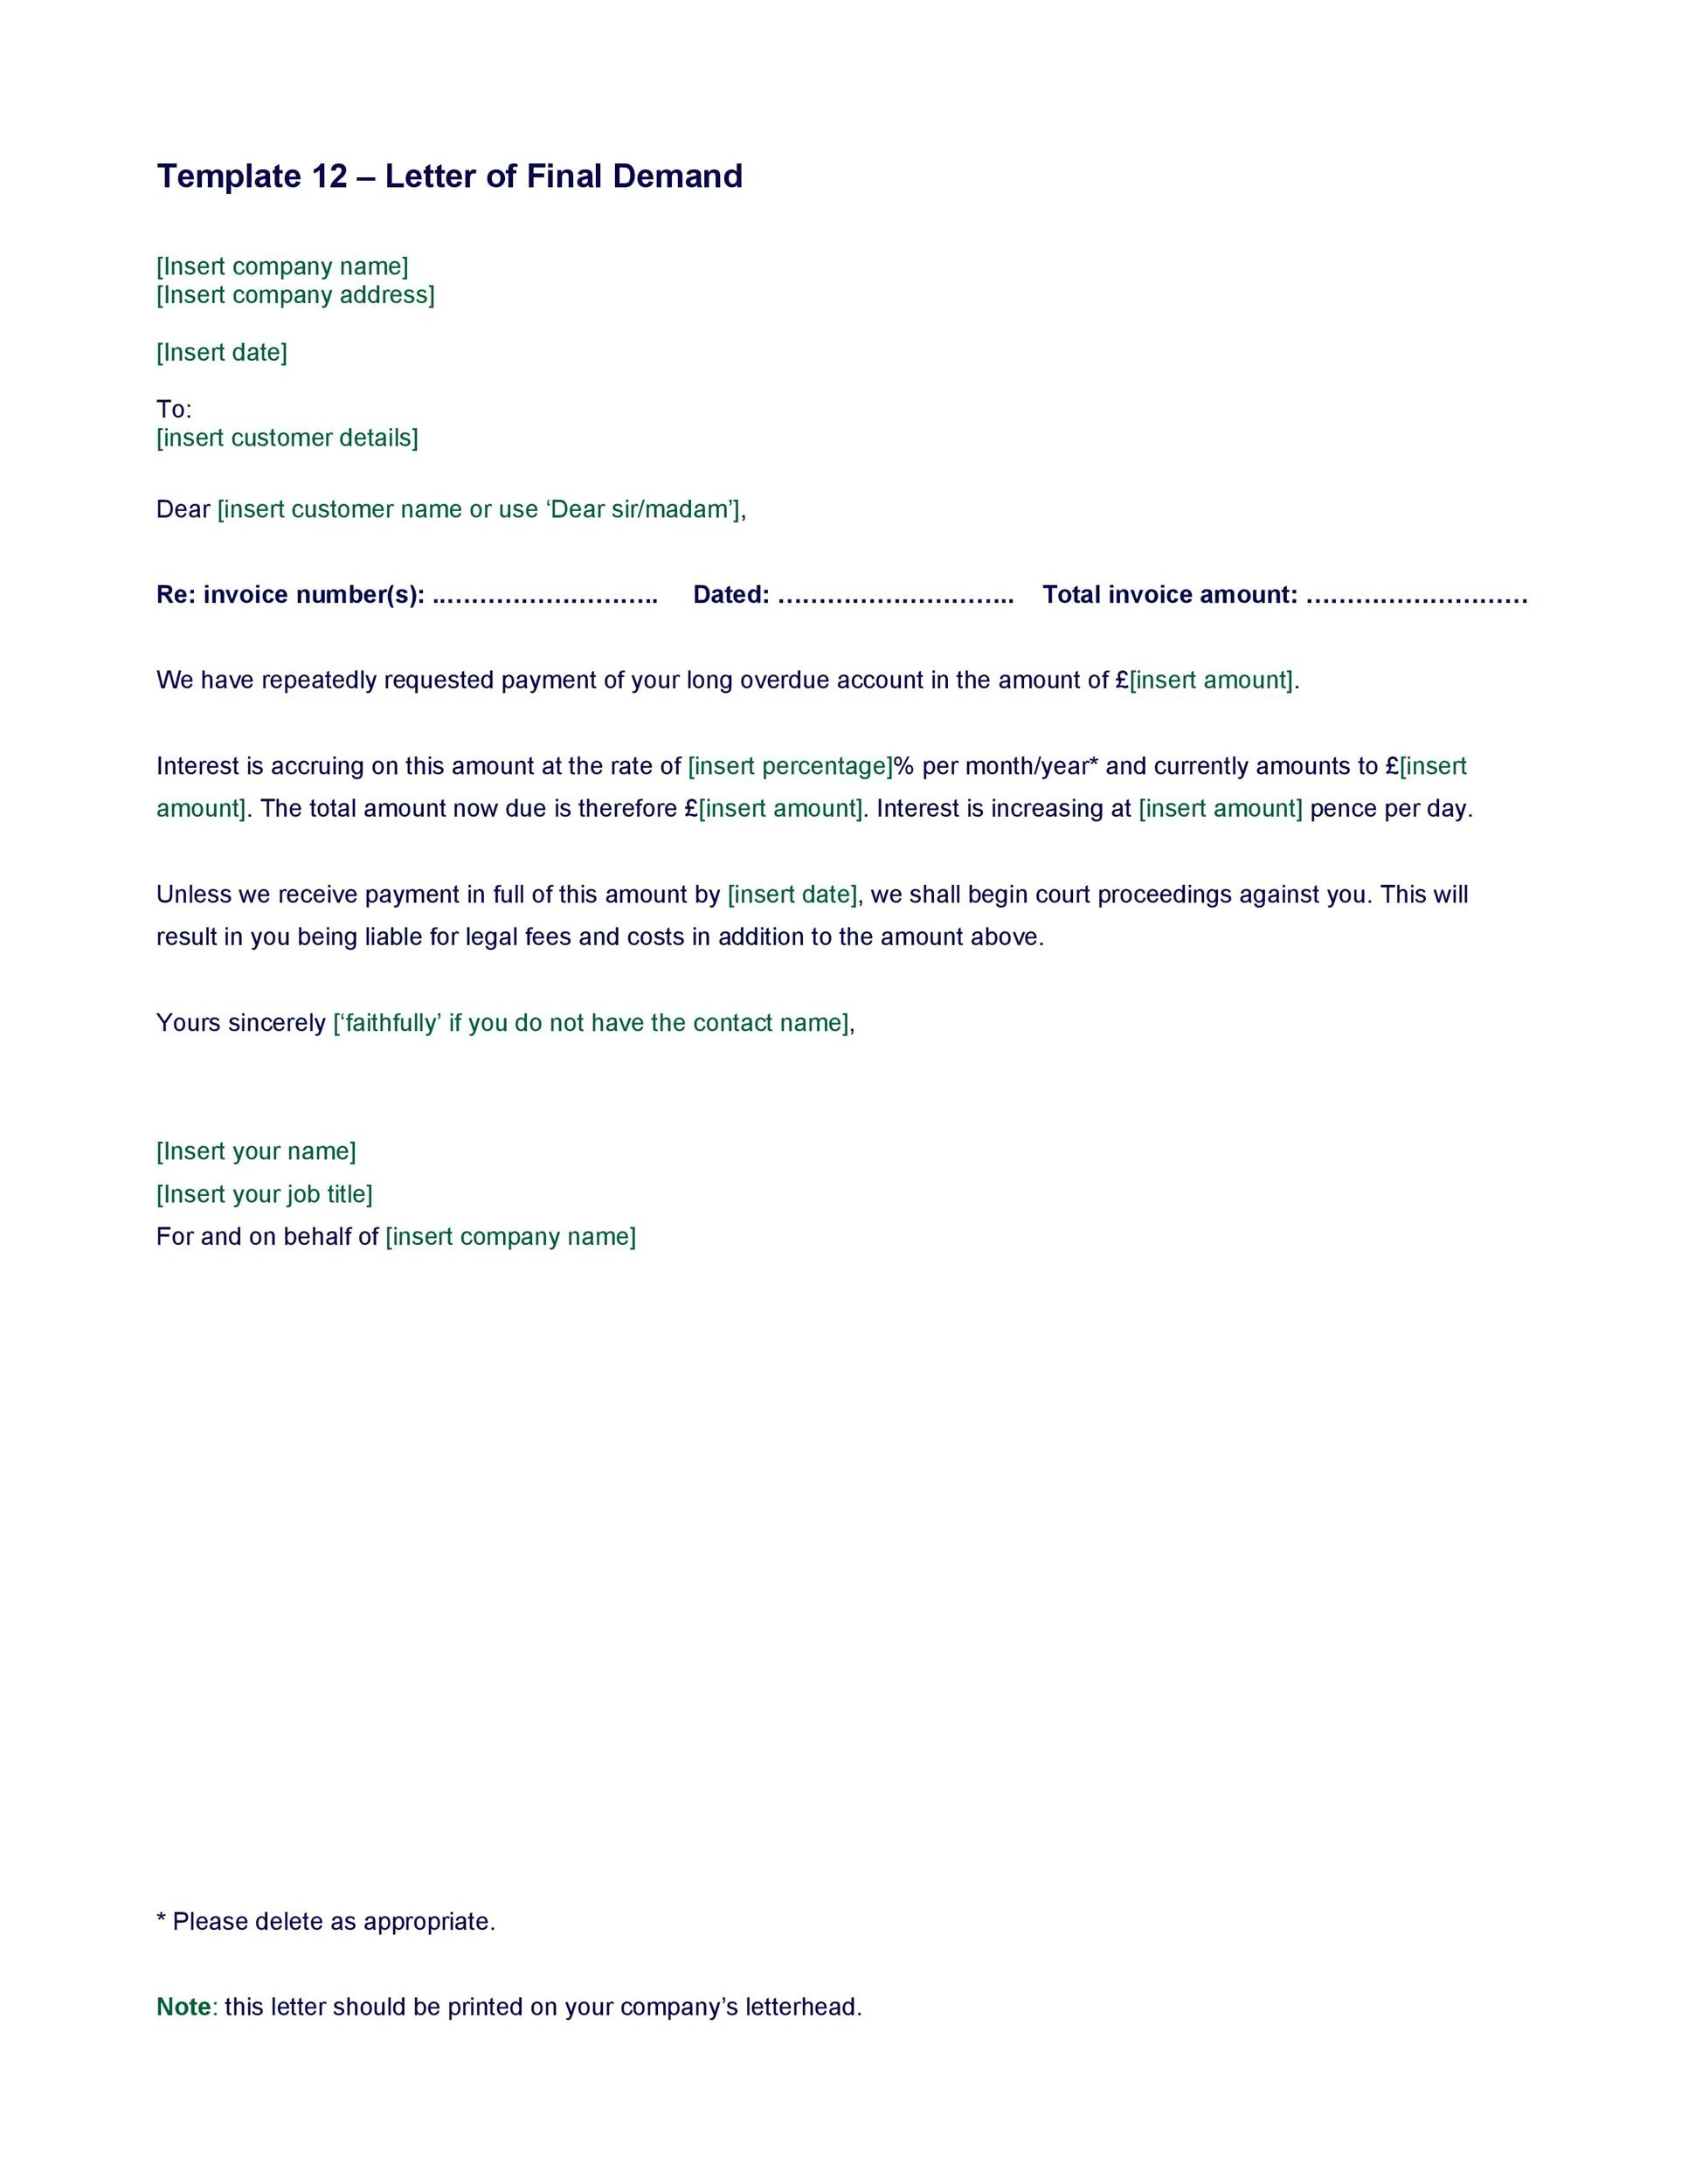 40 Best Demand Letter Templates (Free Samples) ᐅ Template Lab